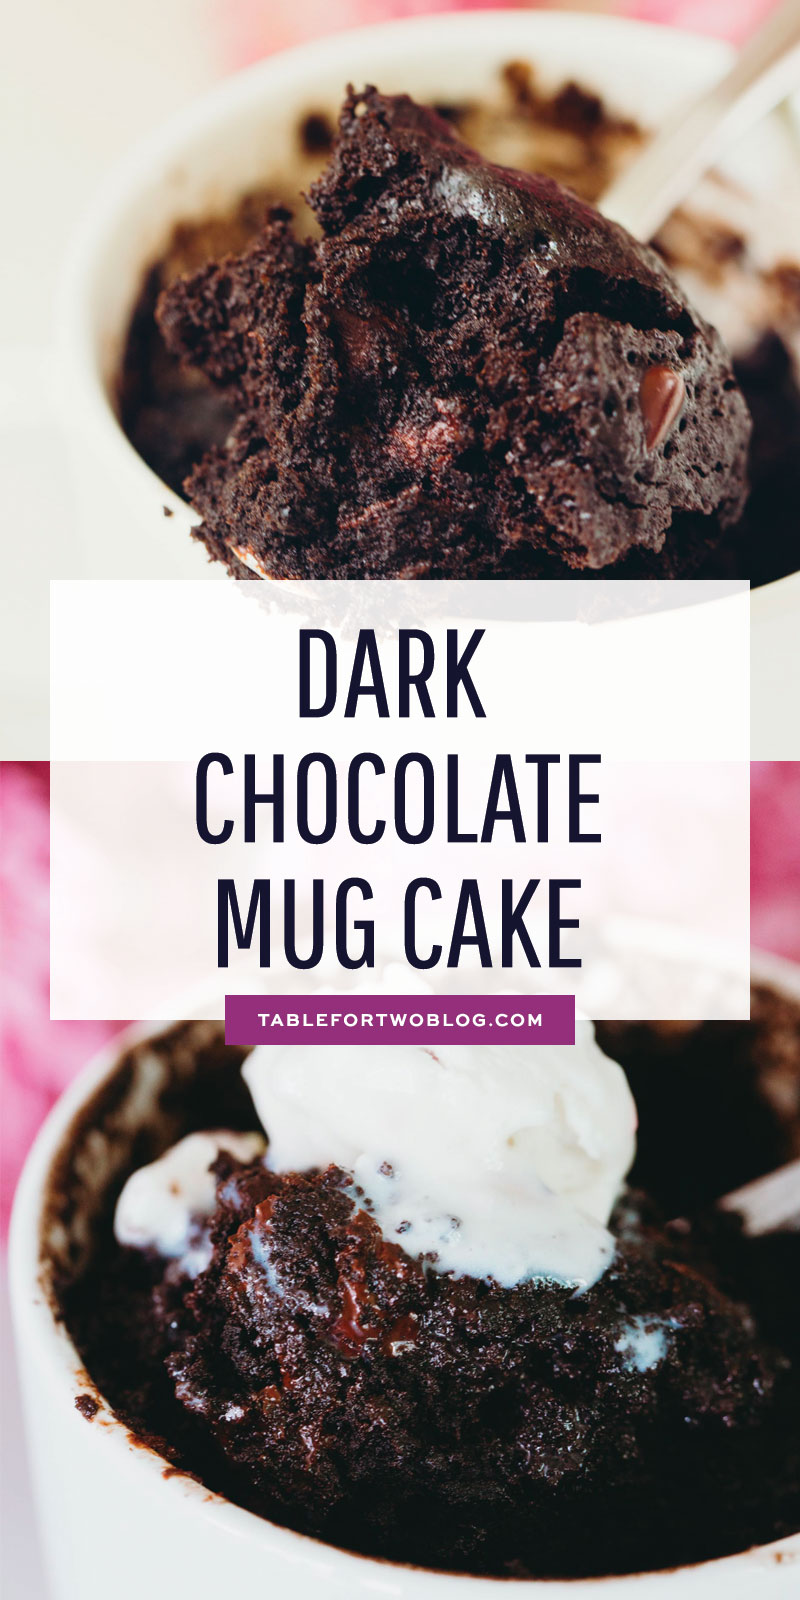 This dark chocolate mug cake is, well, a dark chocolate version of my famous chocolate mug cake that everyone loves. You gotta have options when the craving hits! #darkchocolate #cakeinamug #mugcake #chocolatemugcake #dessertforone #singleserving